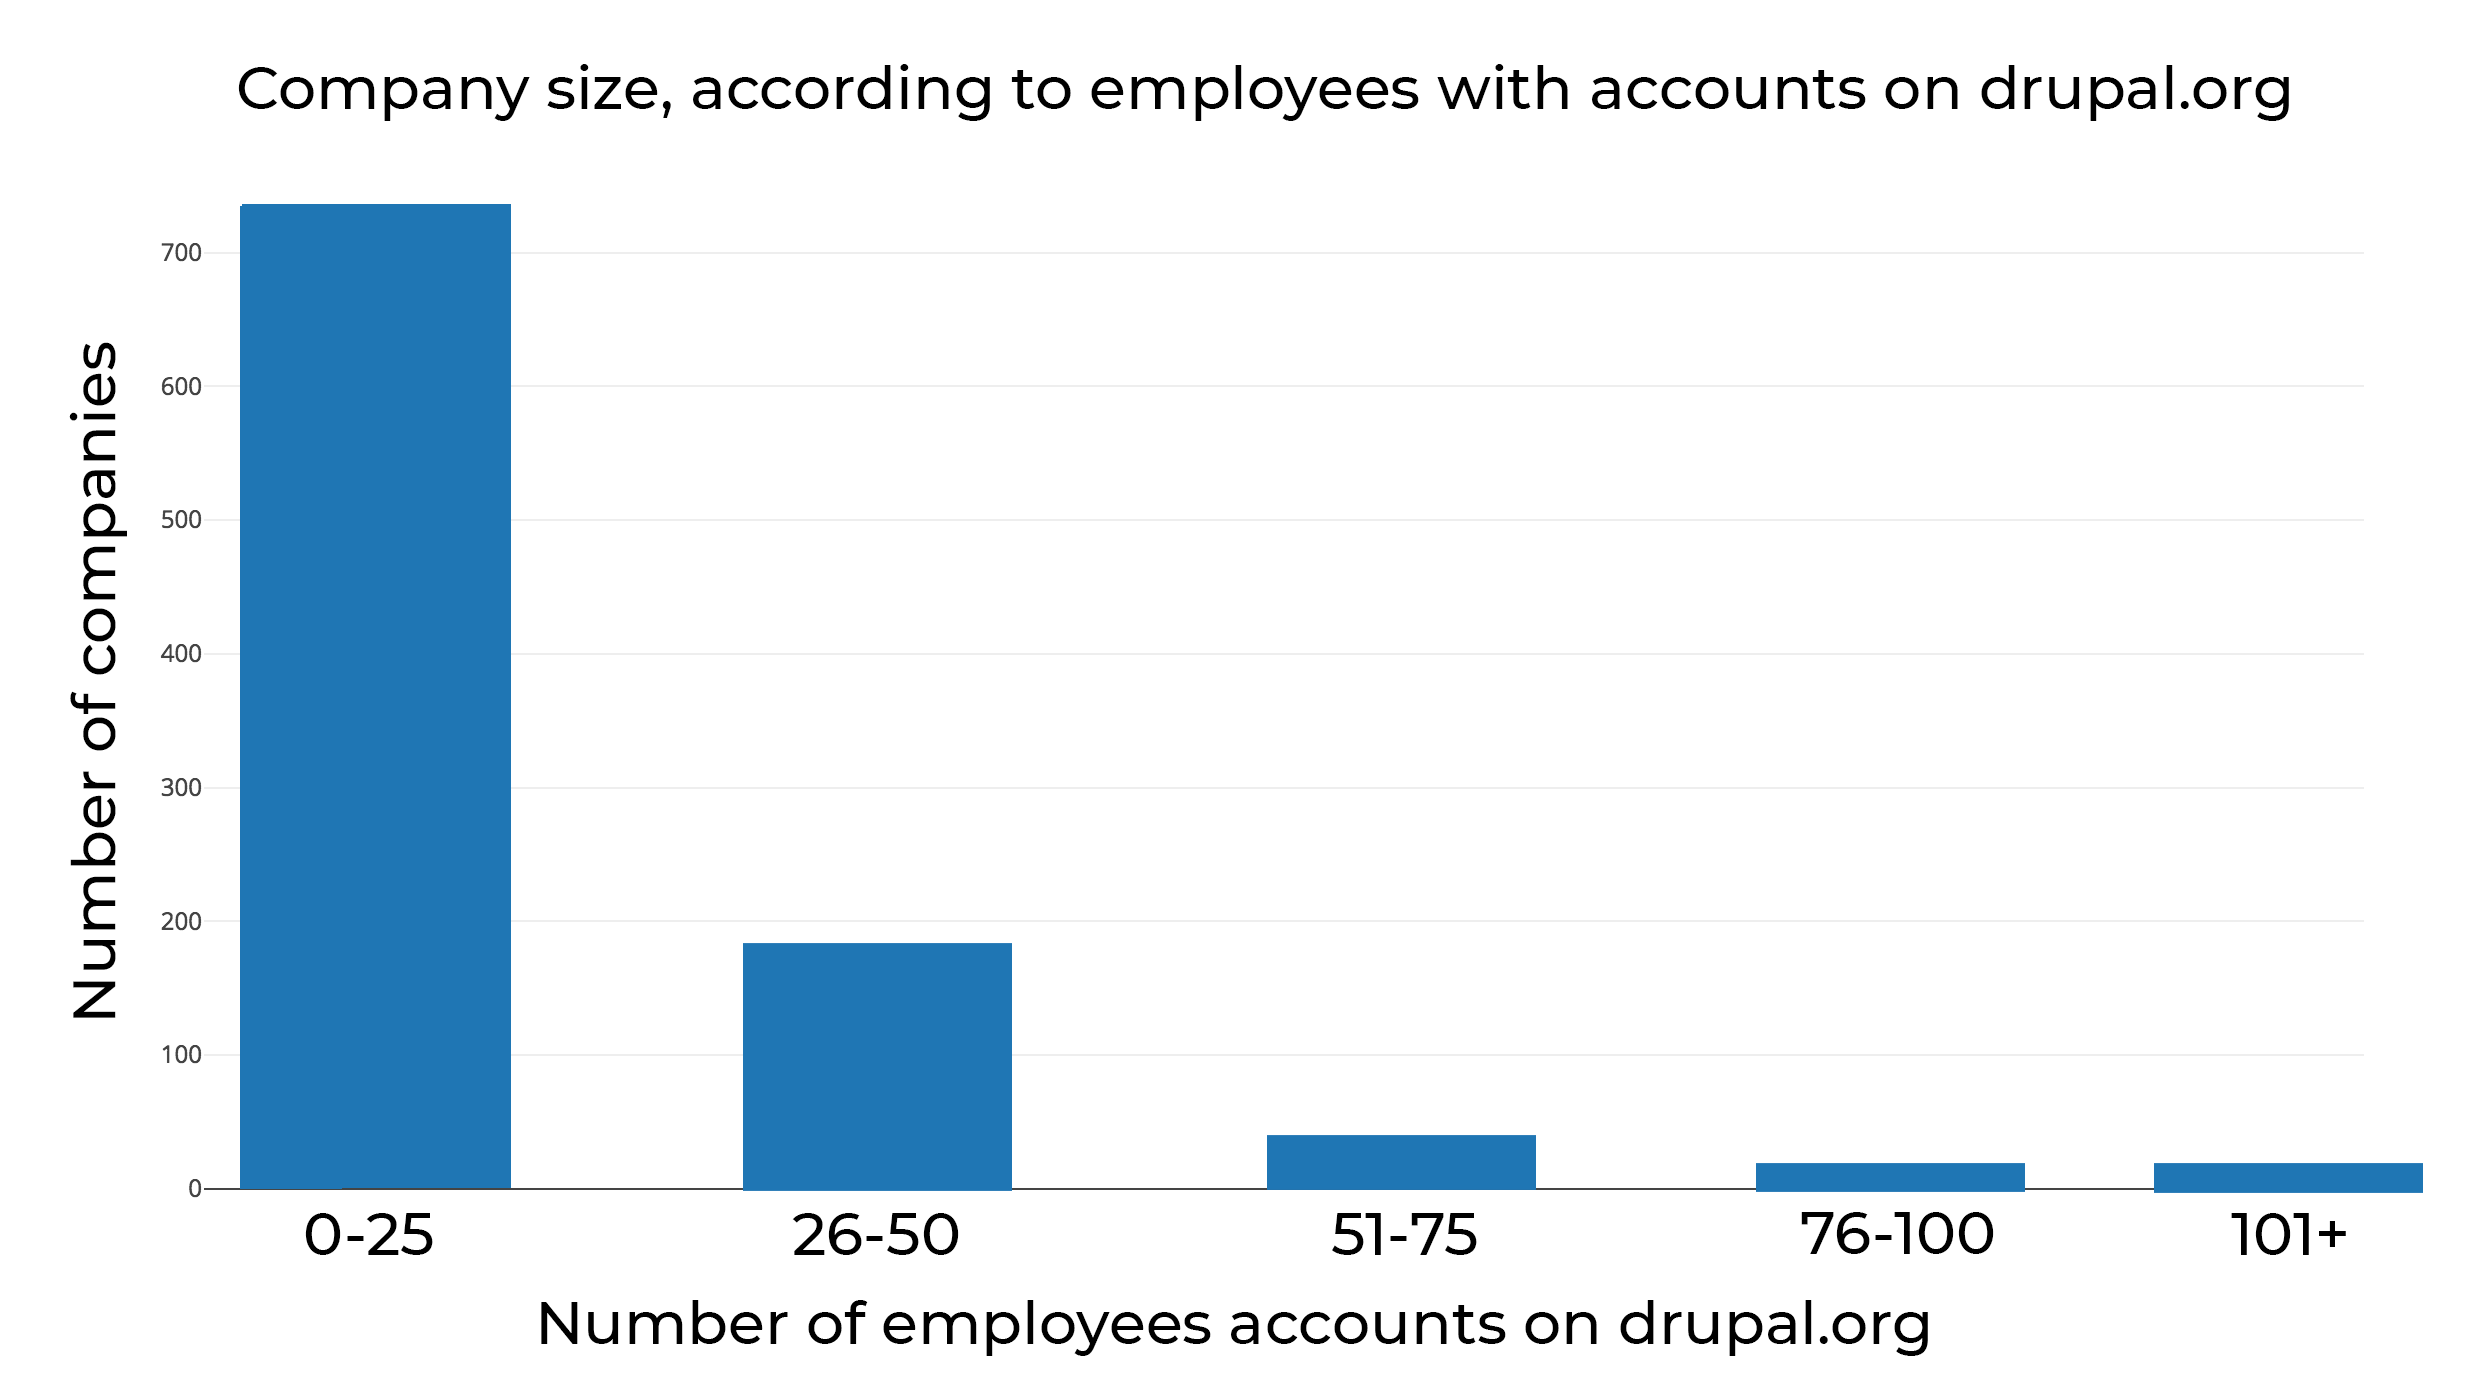 company numbers according to employees with accounts on drupal.org